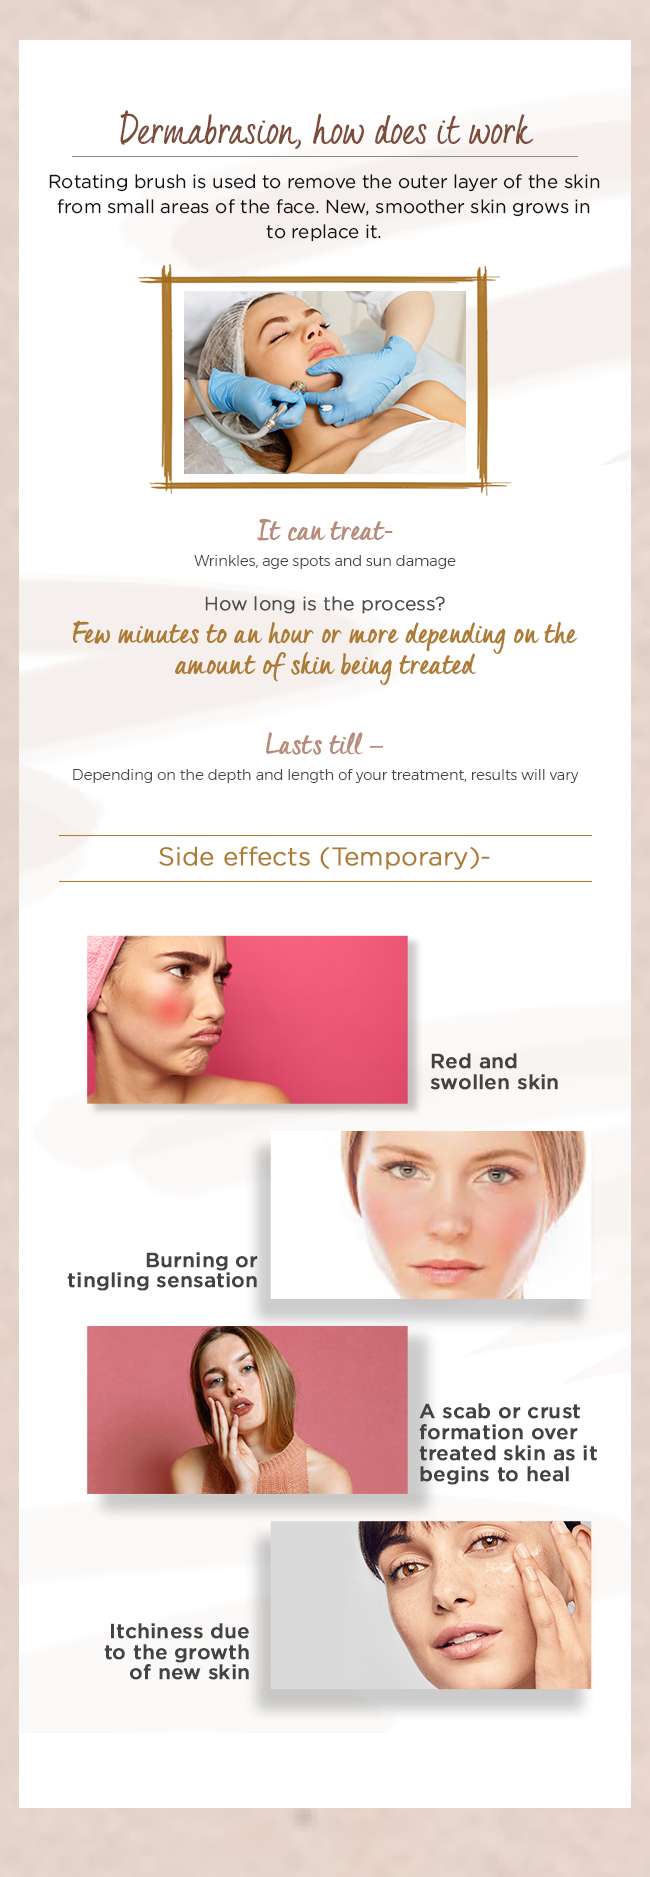 Dermabrasion__how_does_it_work